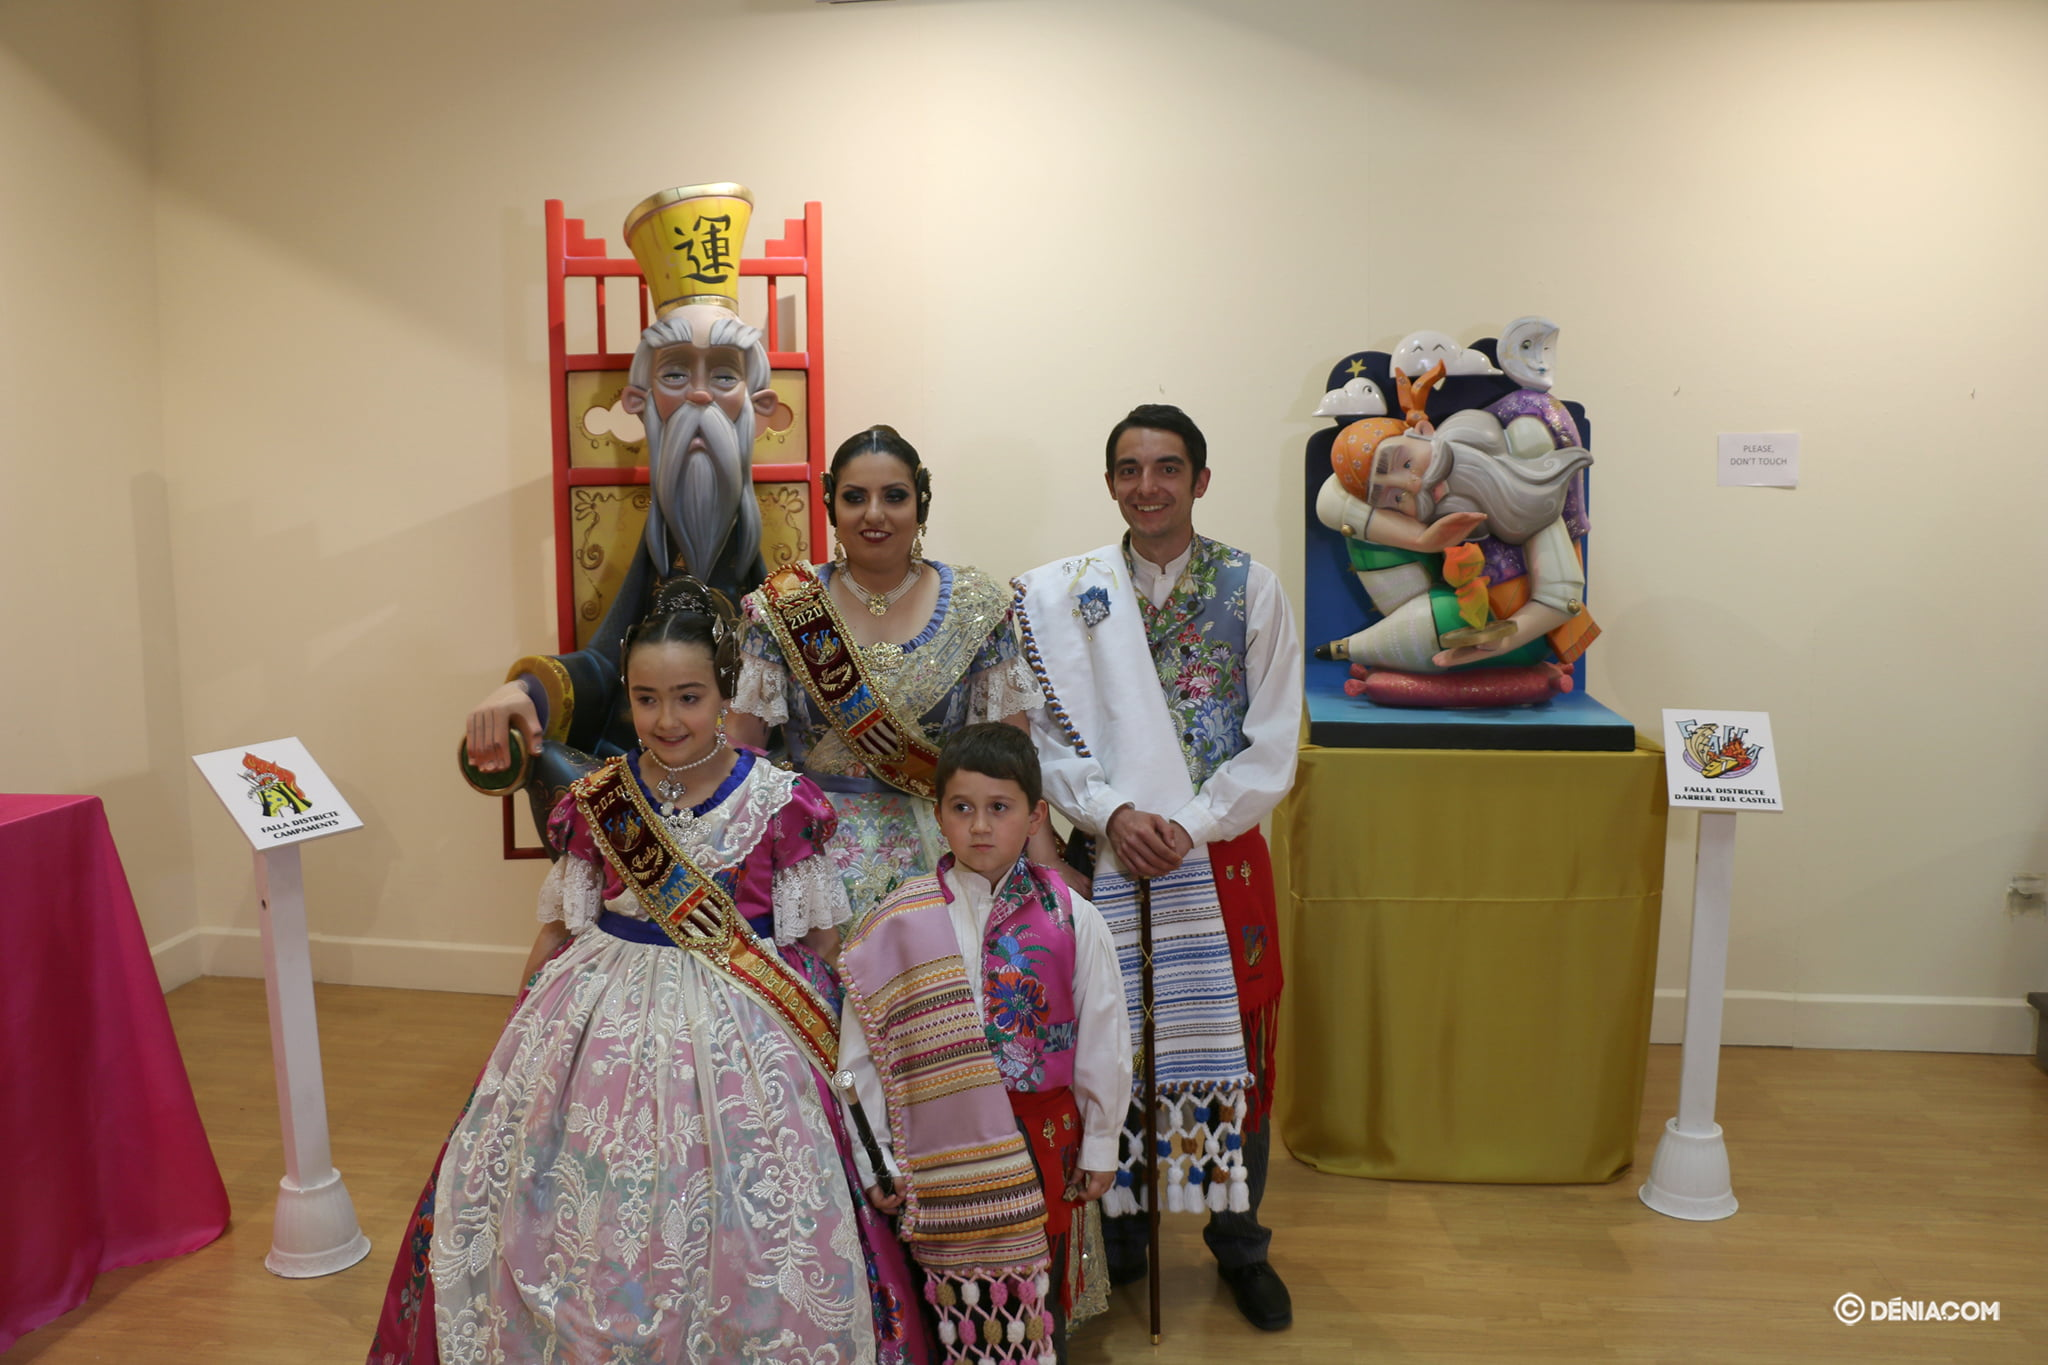 Exhibition of the Ninot 2020 - Falla Darrere del Castell